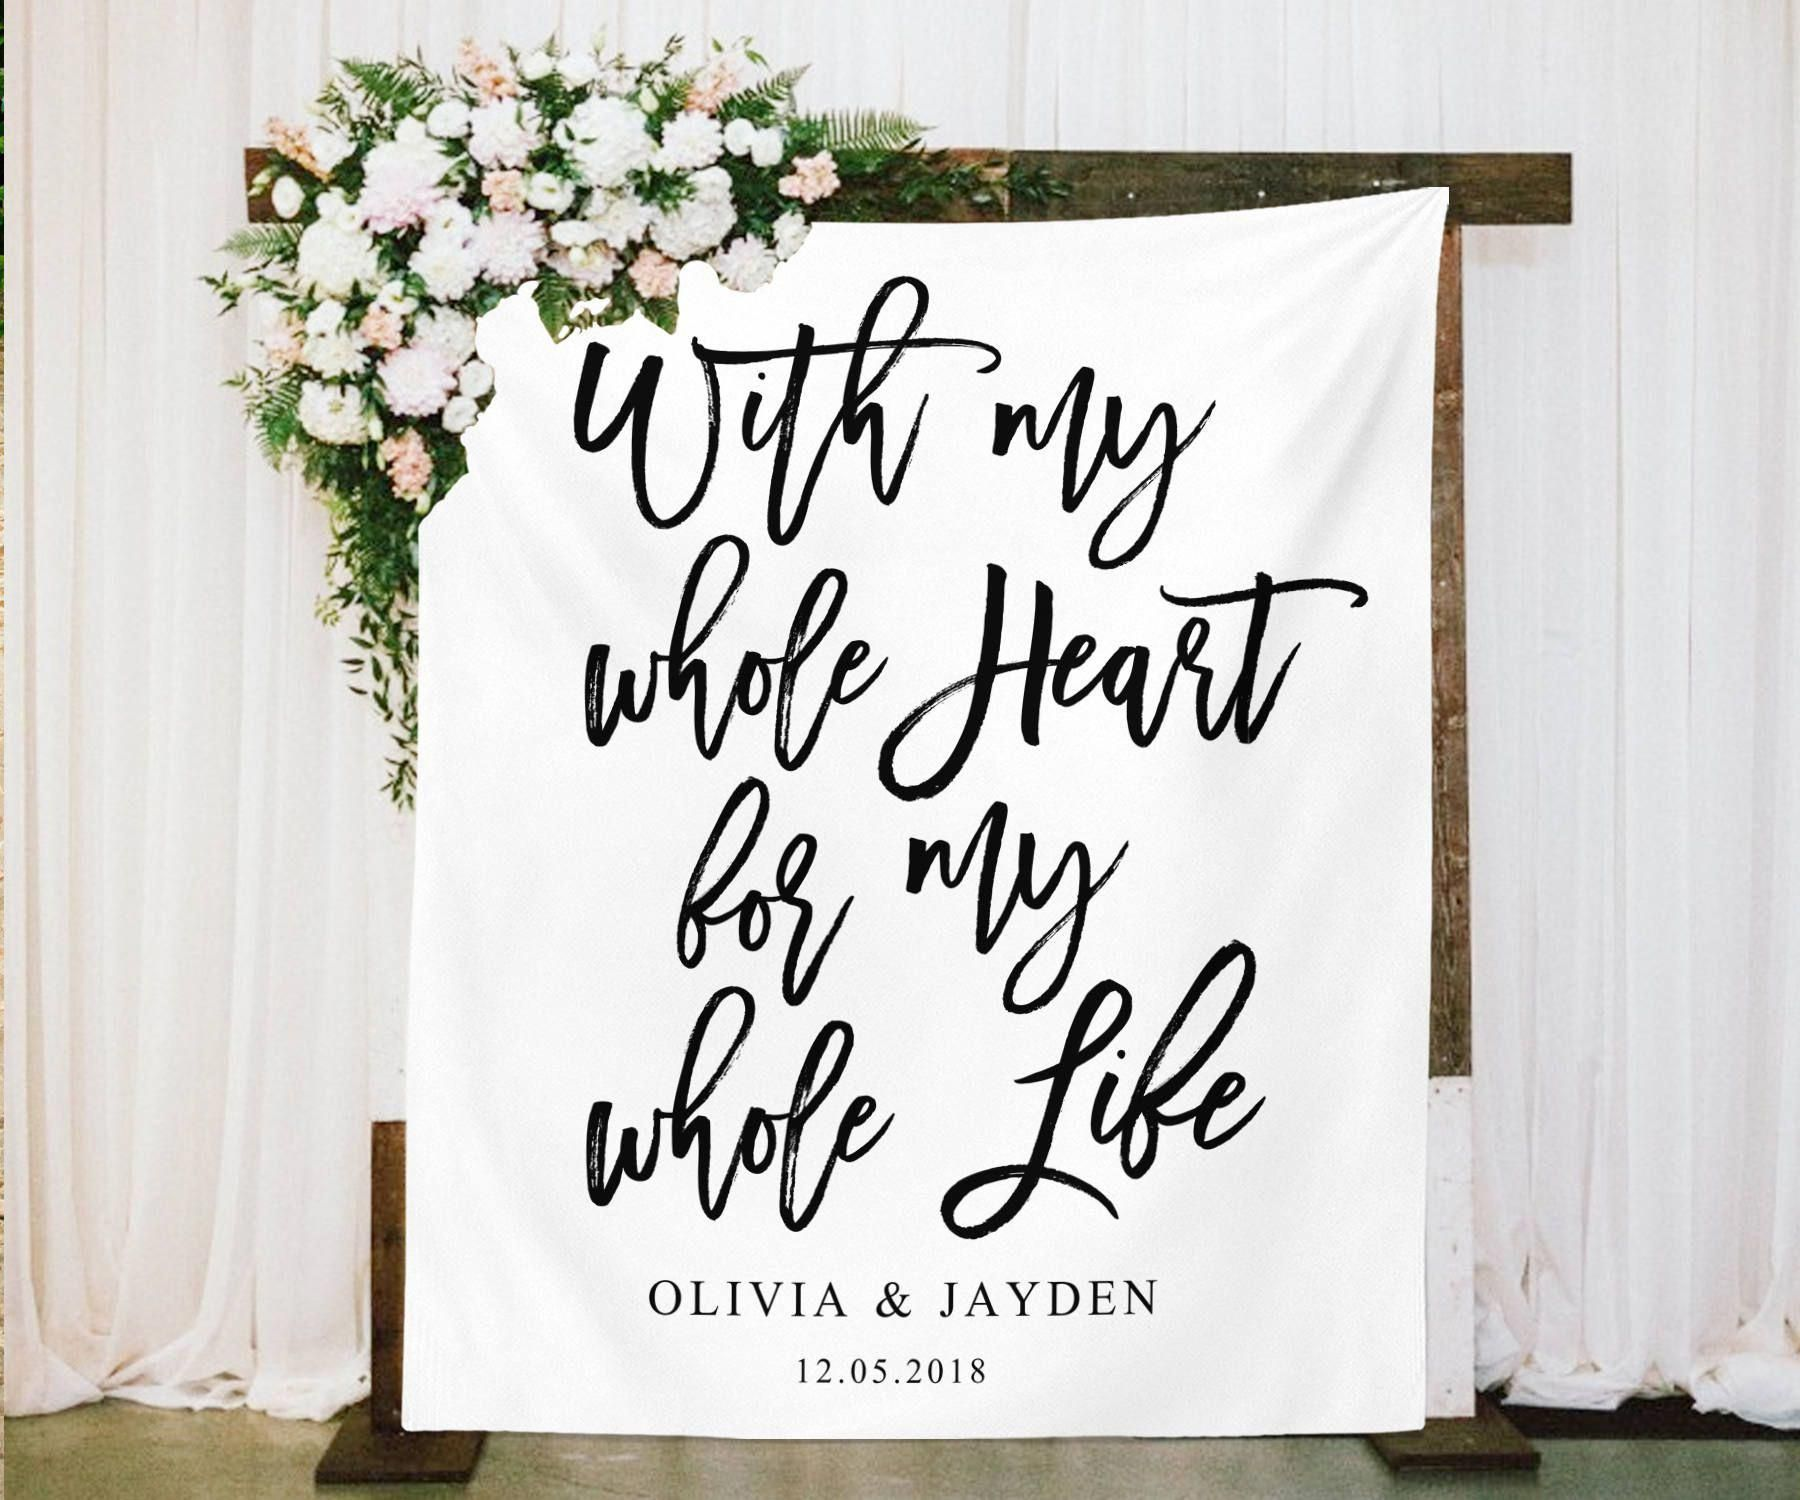 Rustic Wedding Backdrop Decoration With My Whole Heart For My